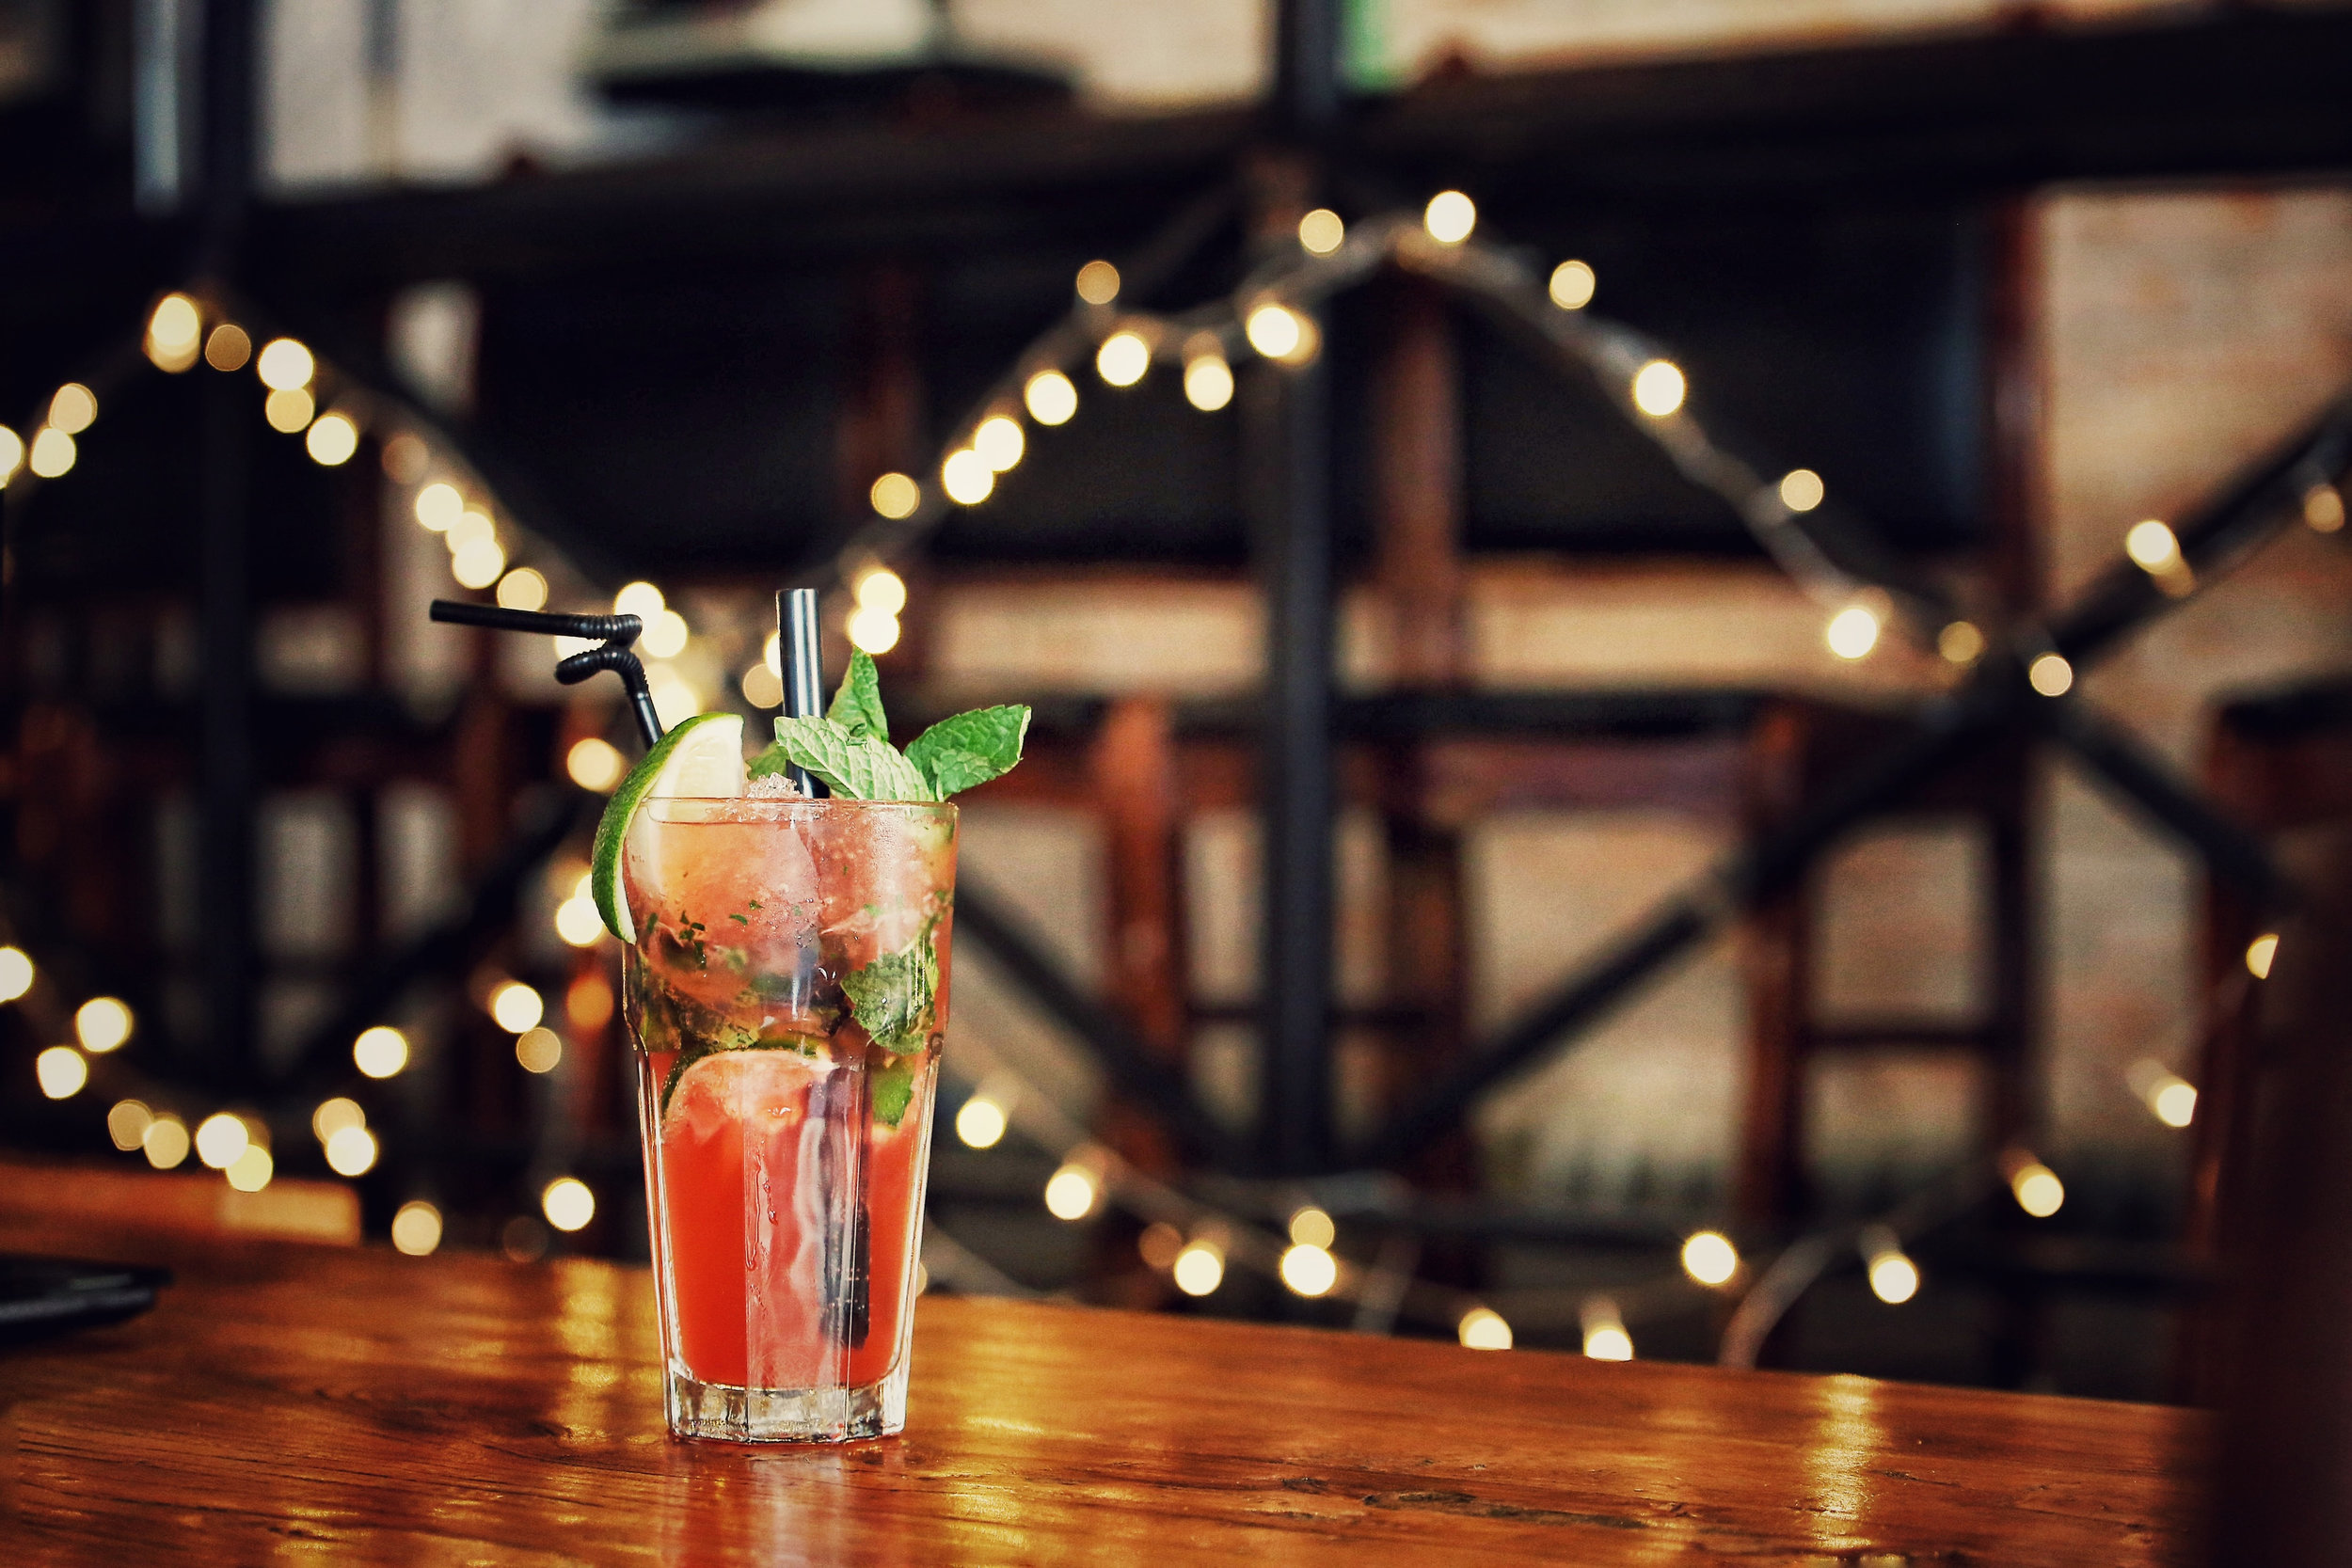 jazzfest cocktail pic with string lights.jpg